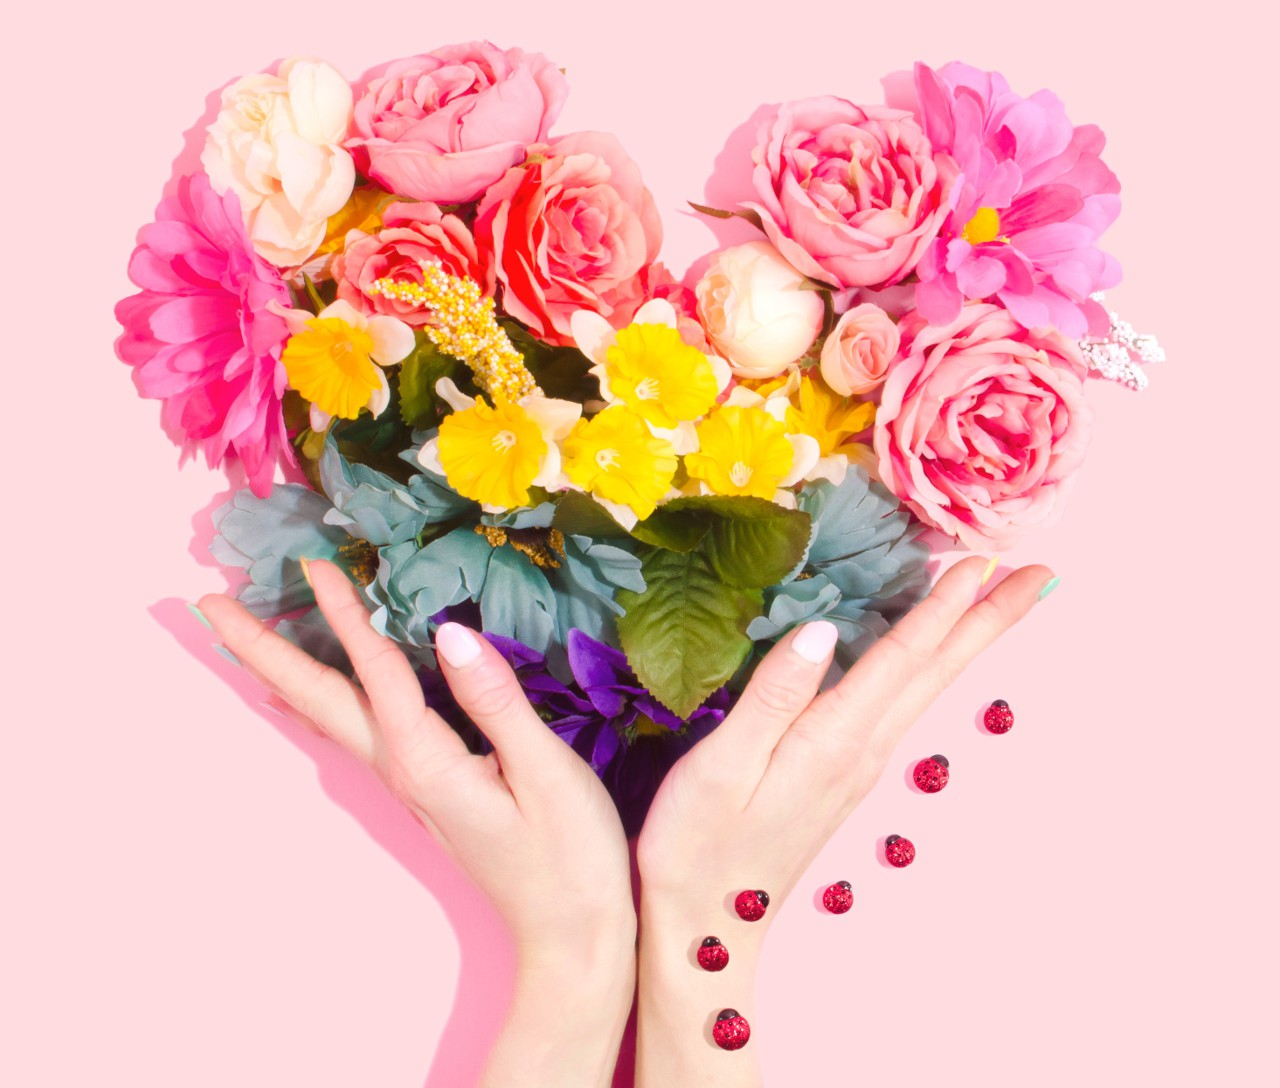 Open female hands holding bouquet of flowers in heart shape, with lady birds